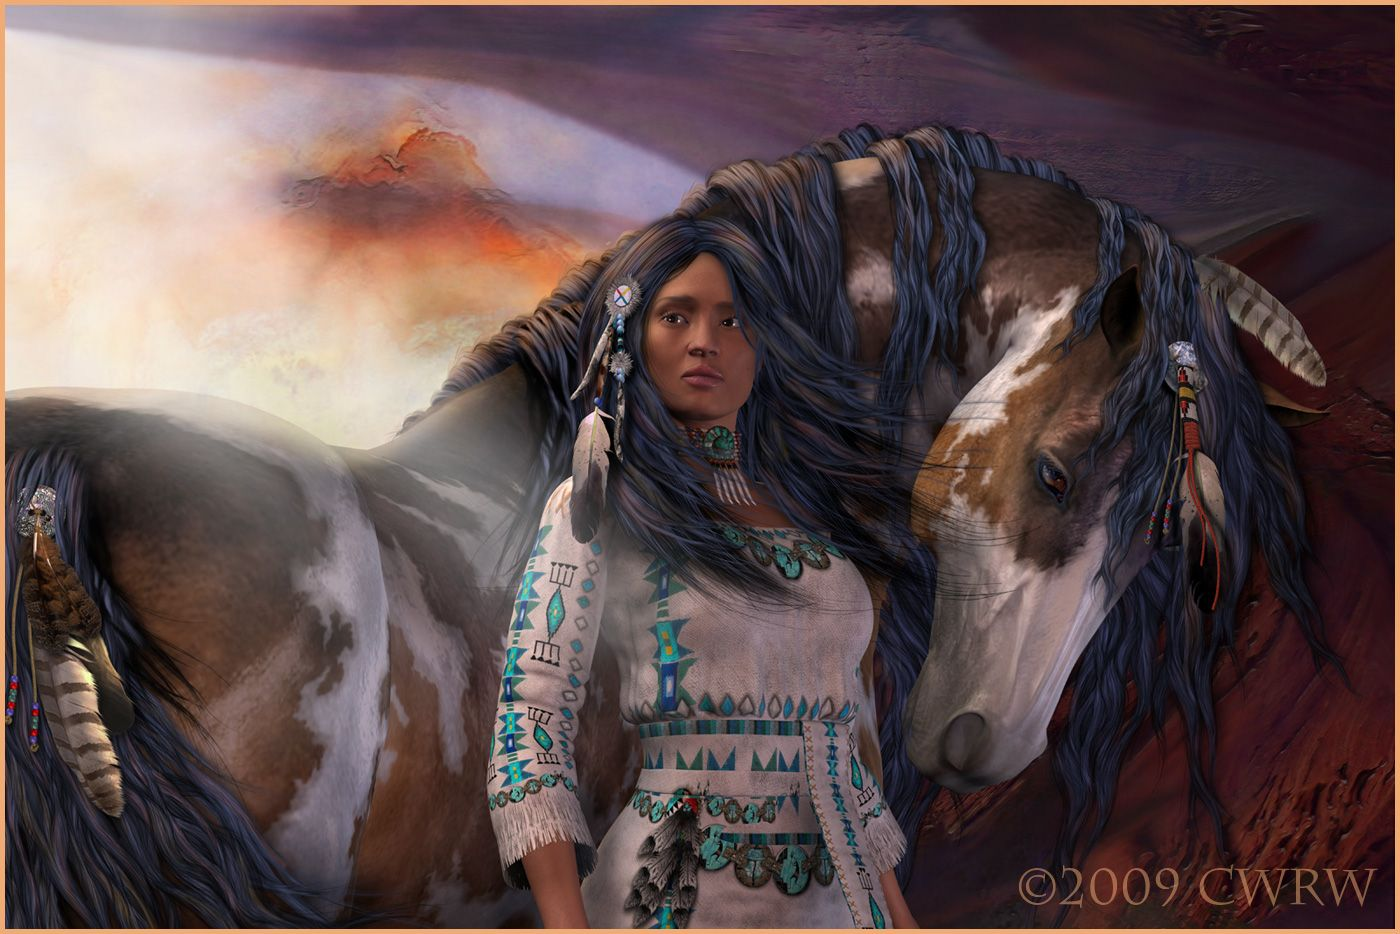 Souls animals girl horses indian indian american native american 1400x934